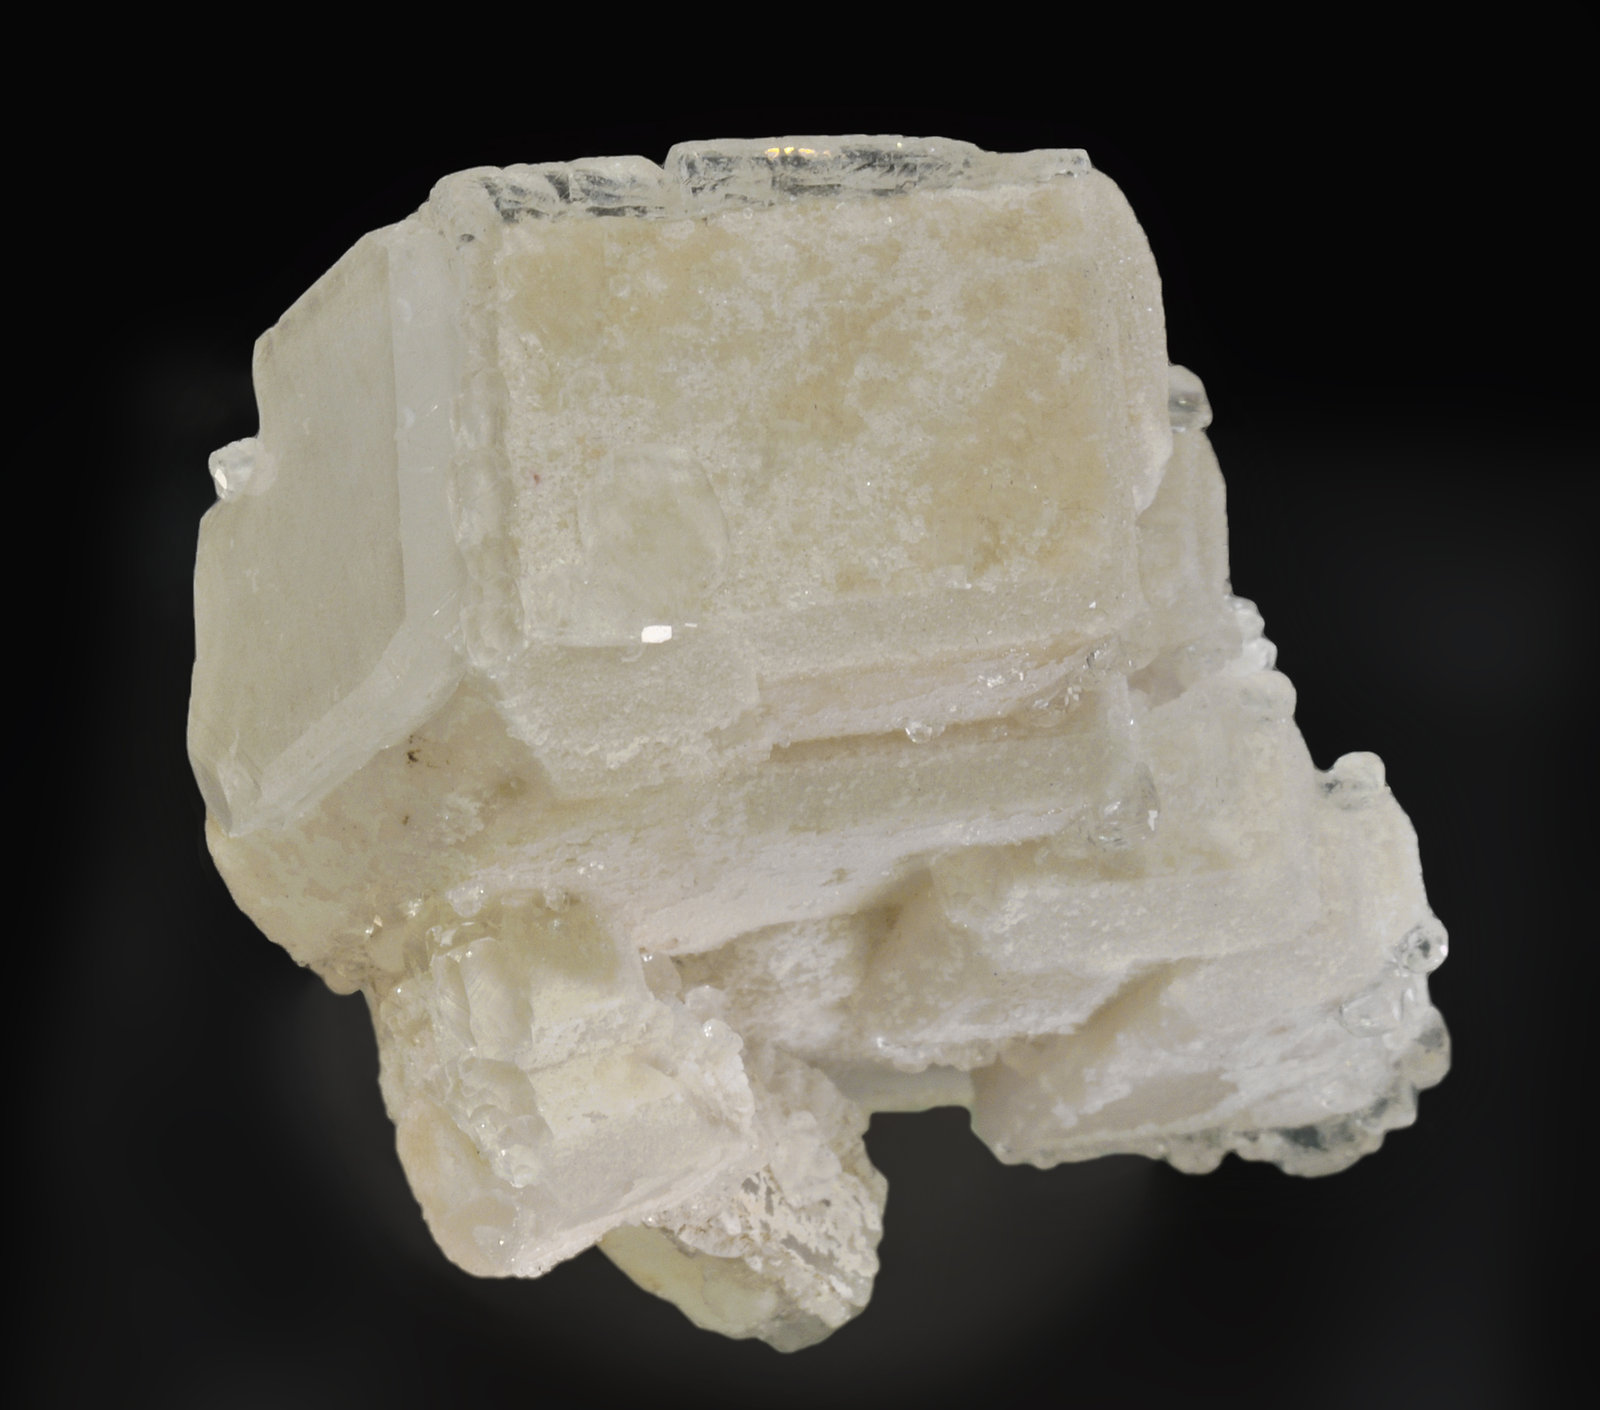 specimens/s_imagesR0/Calcite-TX16R0t.jpg